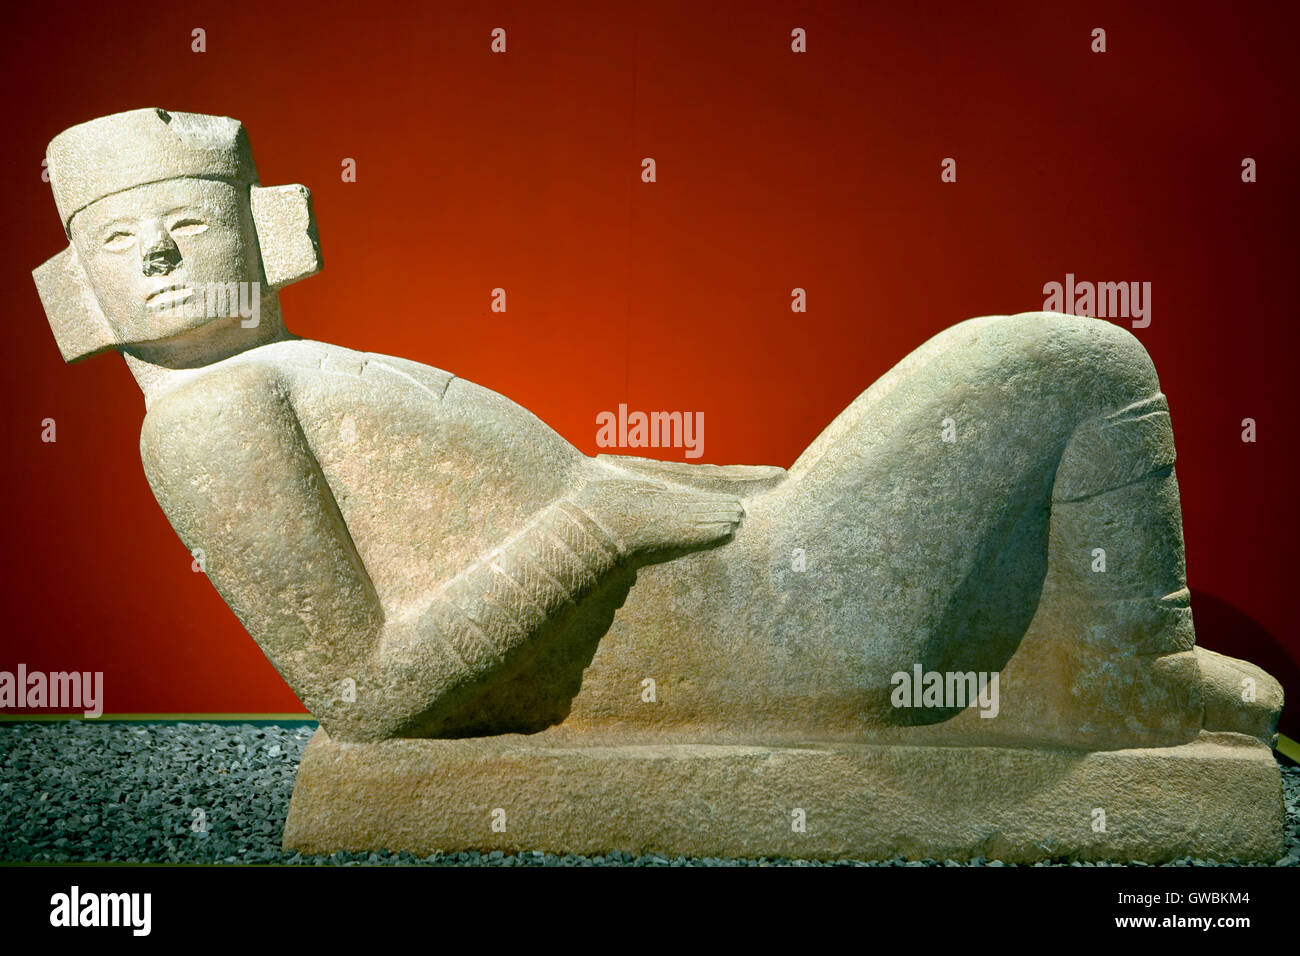 Chac Mool in  the Museum of Anthropology and History of Merida, Yucatan, Mexico - Stock Image